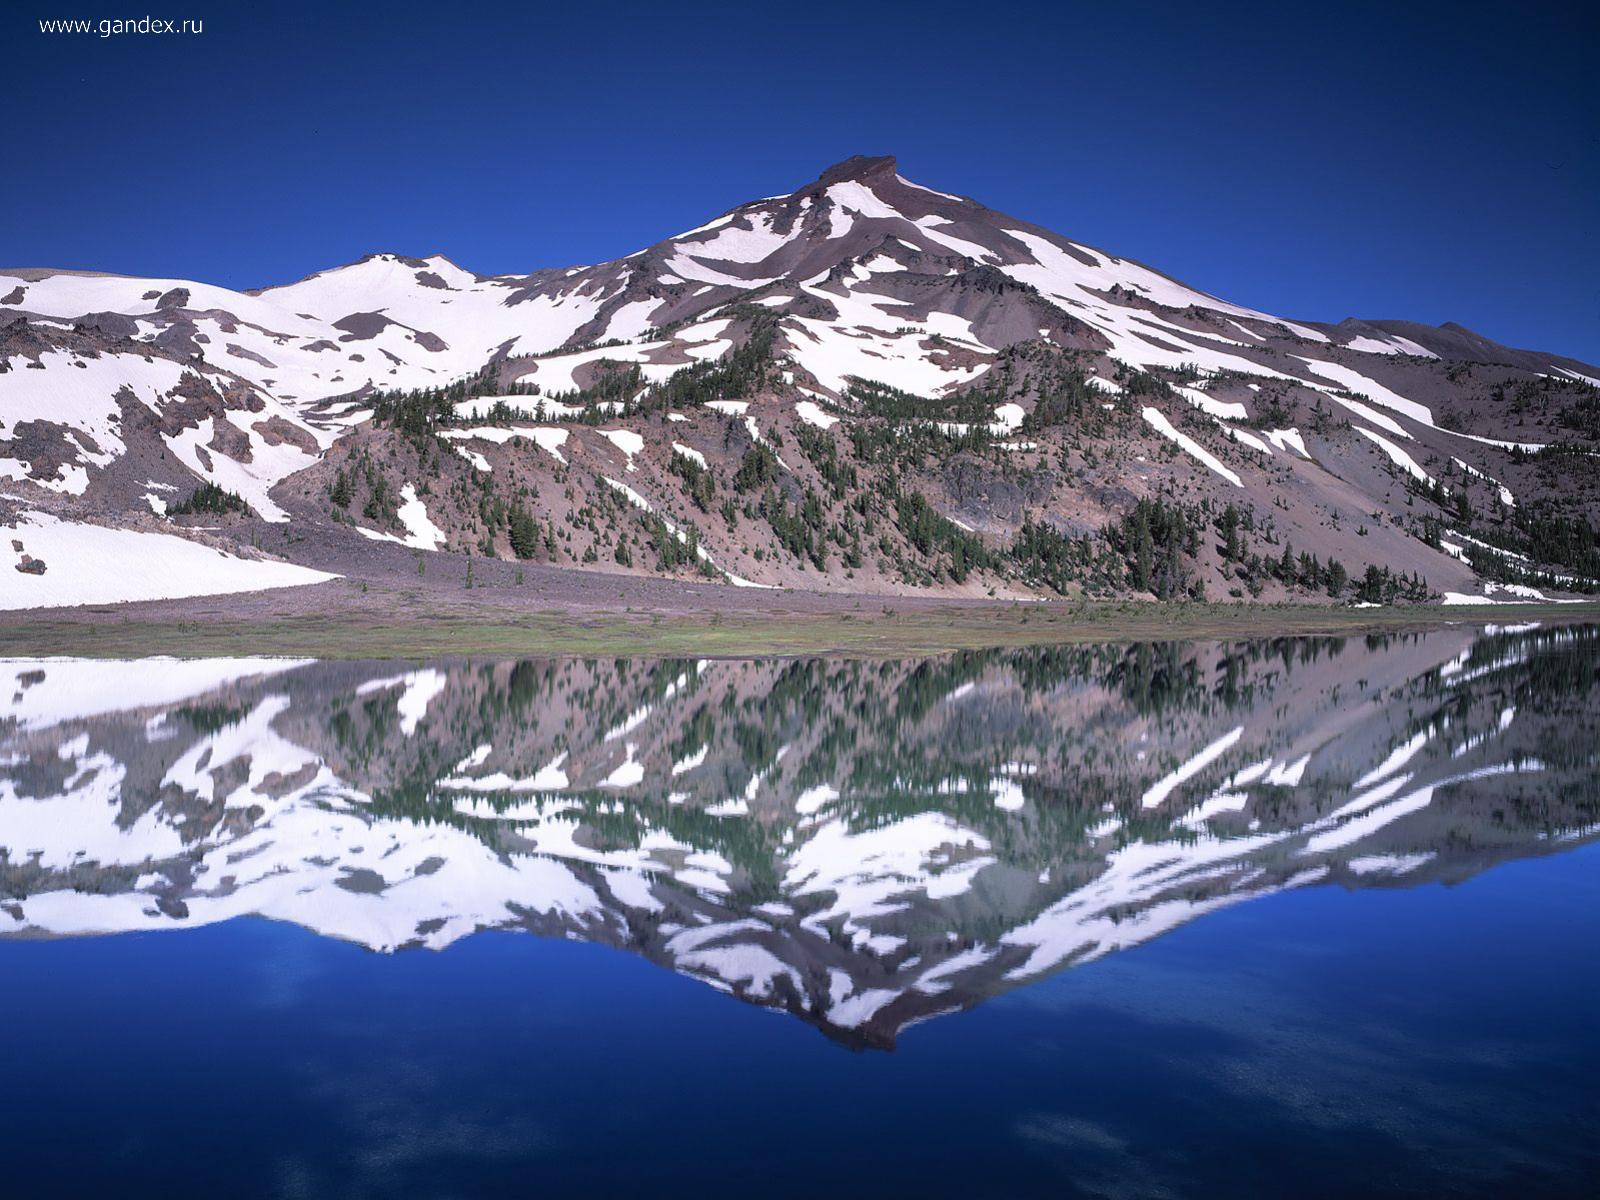 Snow-capped mountains and a cold mountain lake - wallpaper.